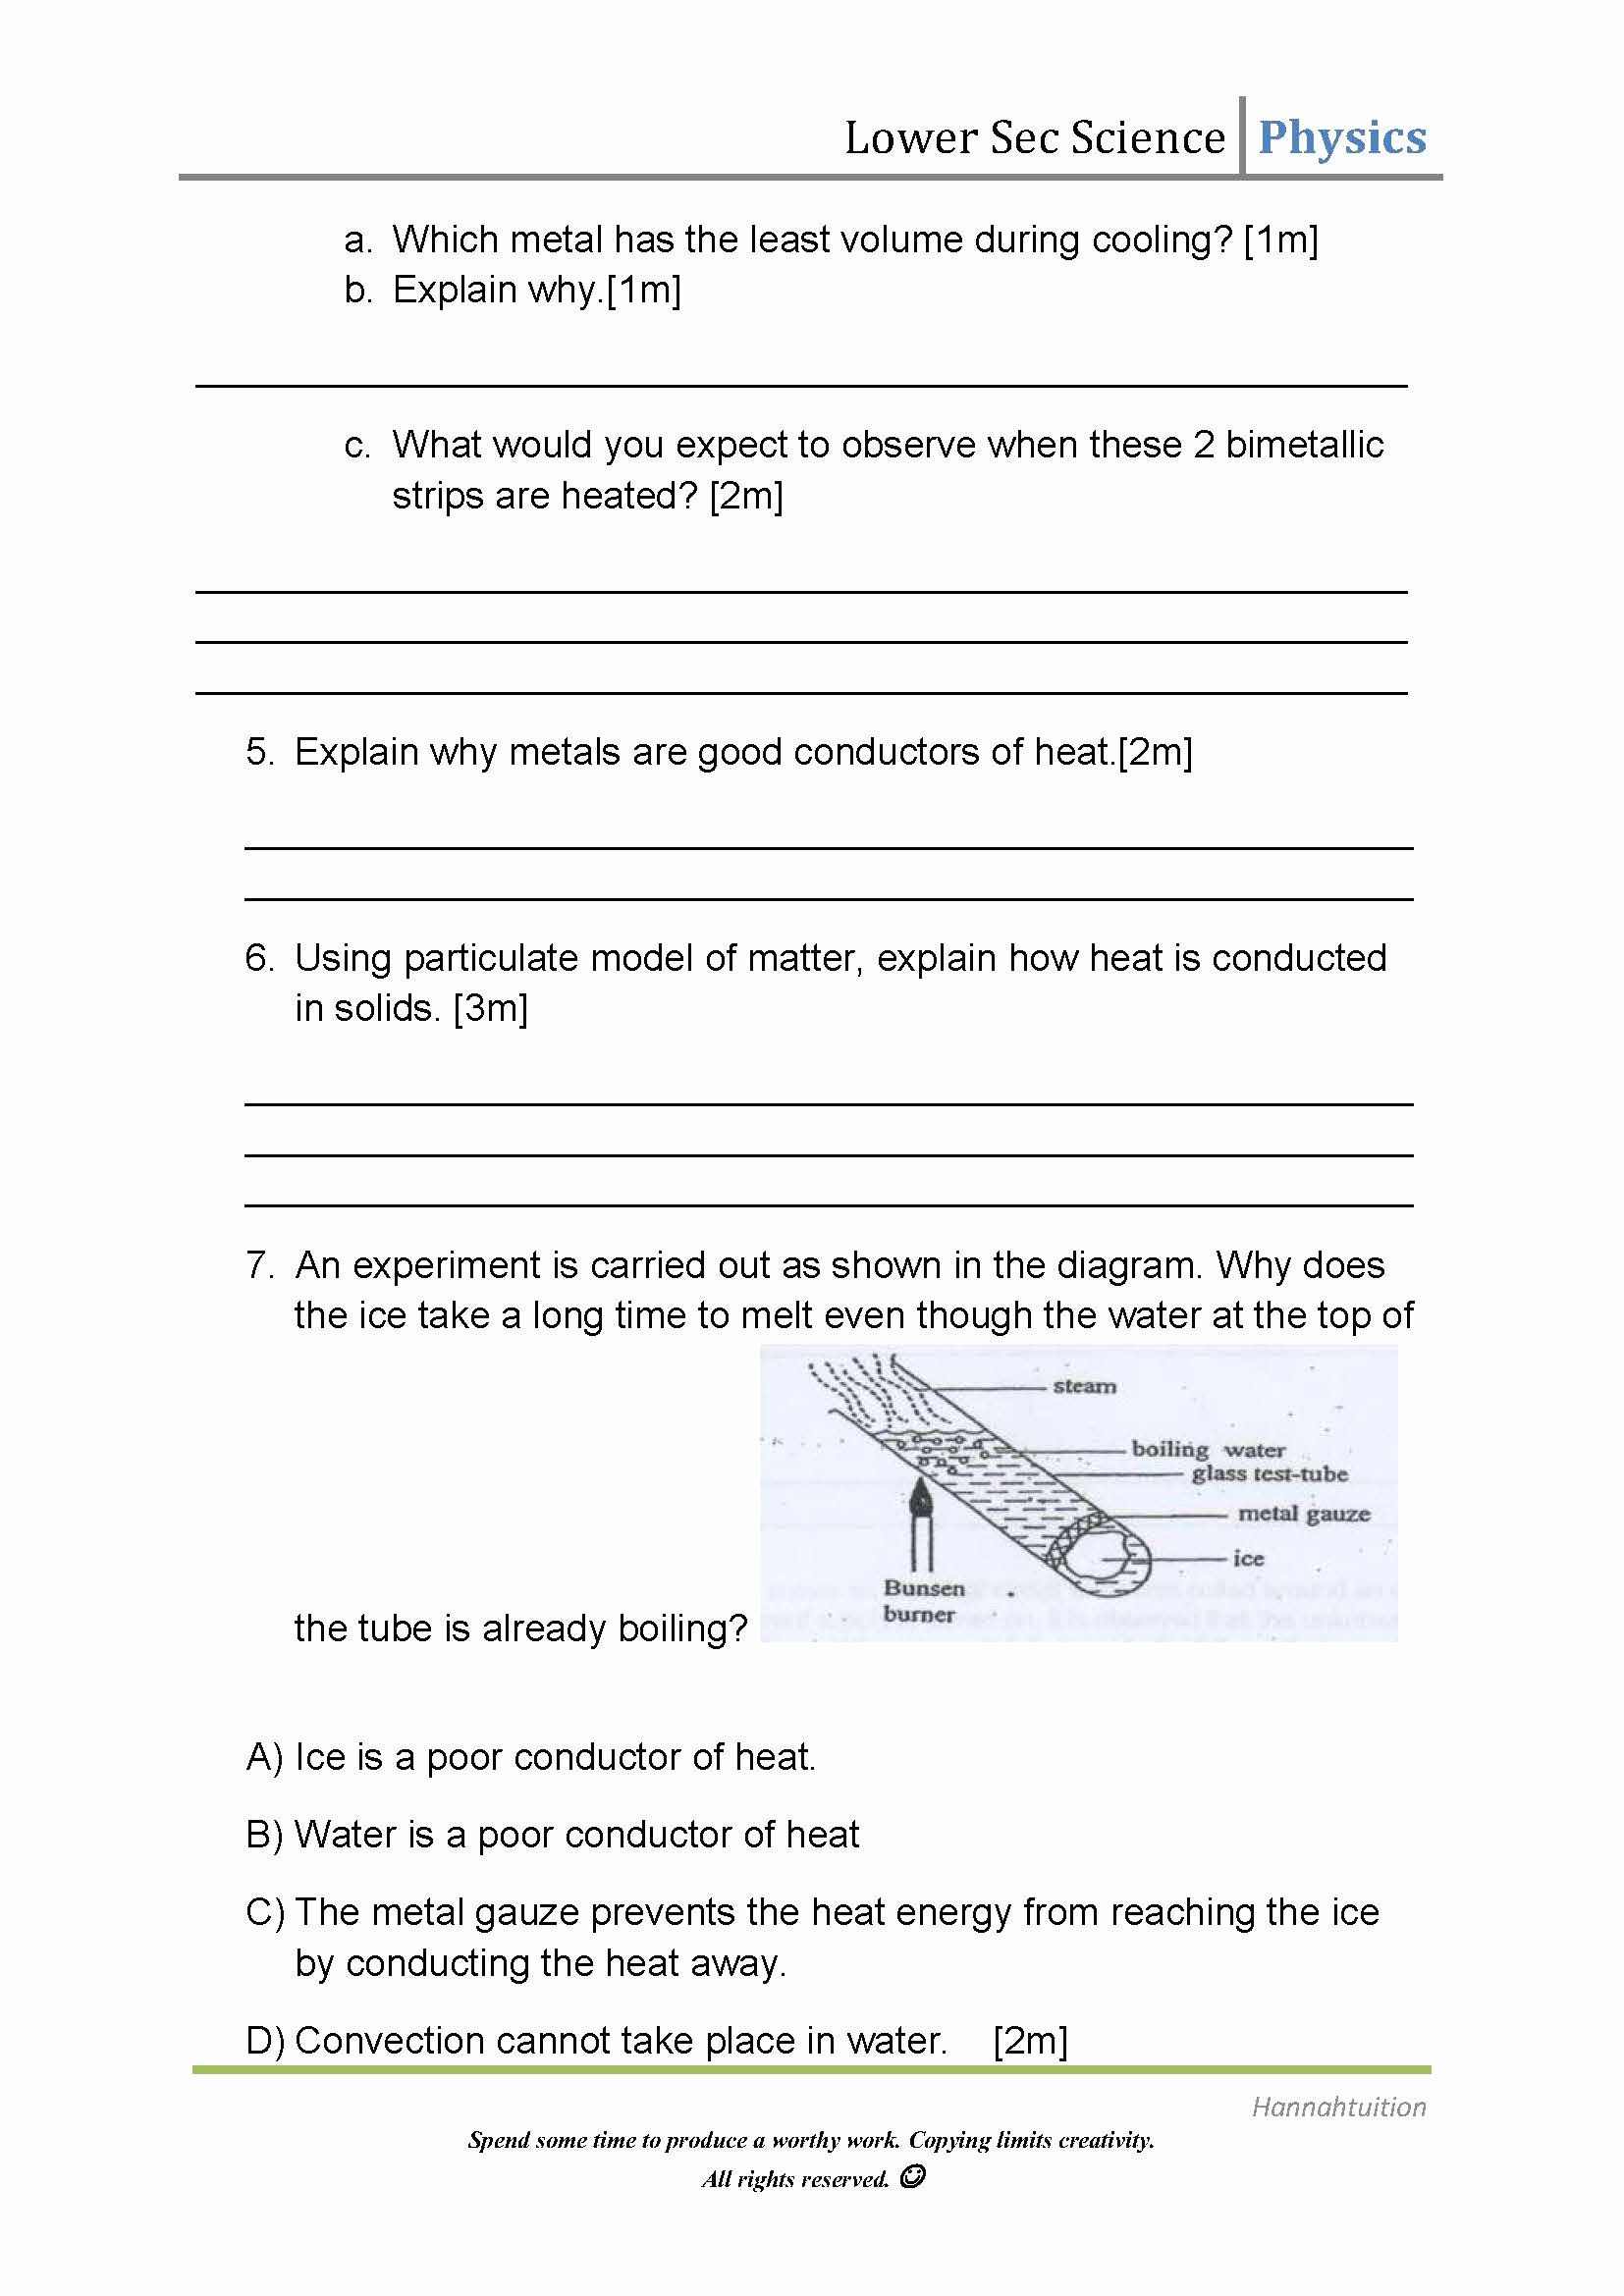 Heat Transfer Worksheet Answers Best Of Methods Of Heat Transfer Answers Convection Heat Transfer